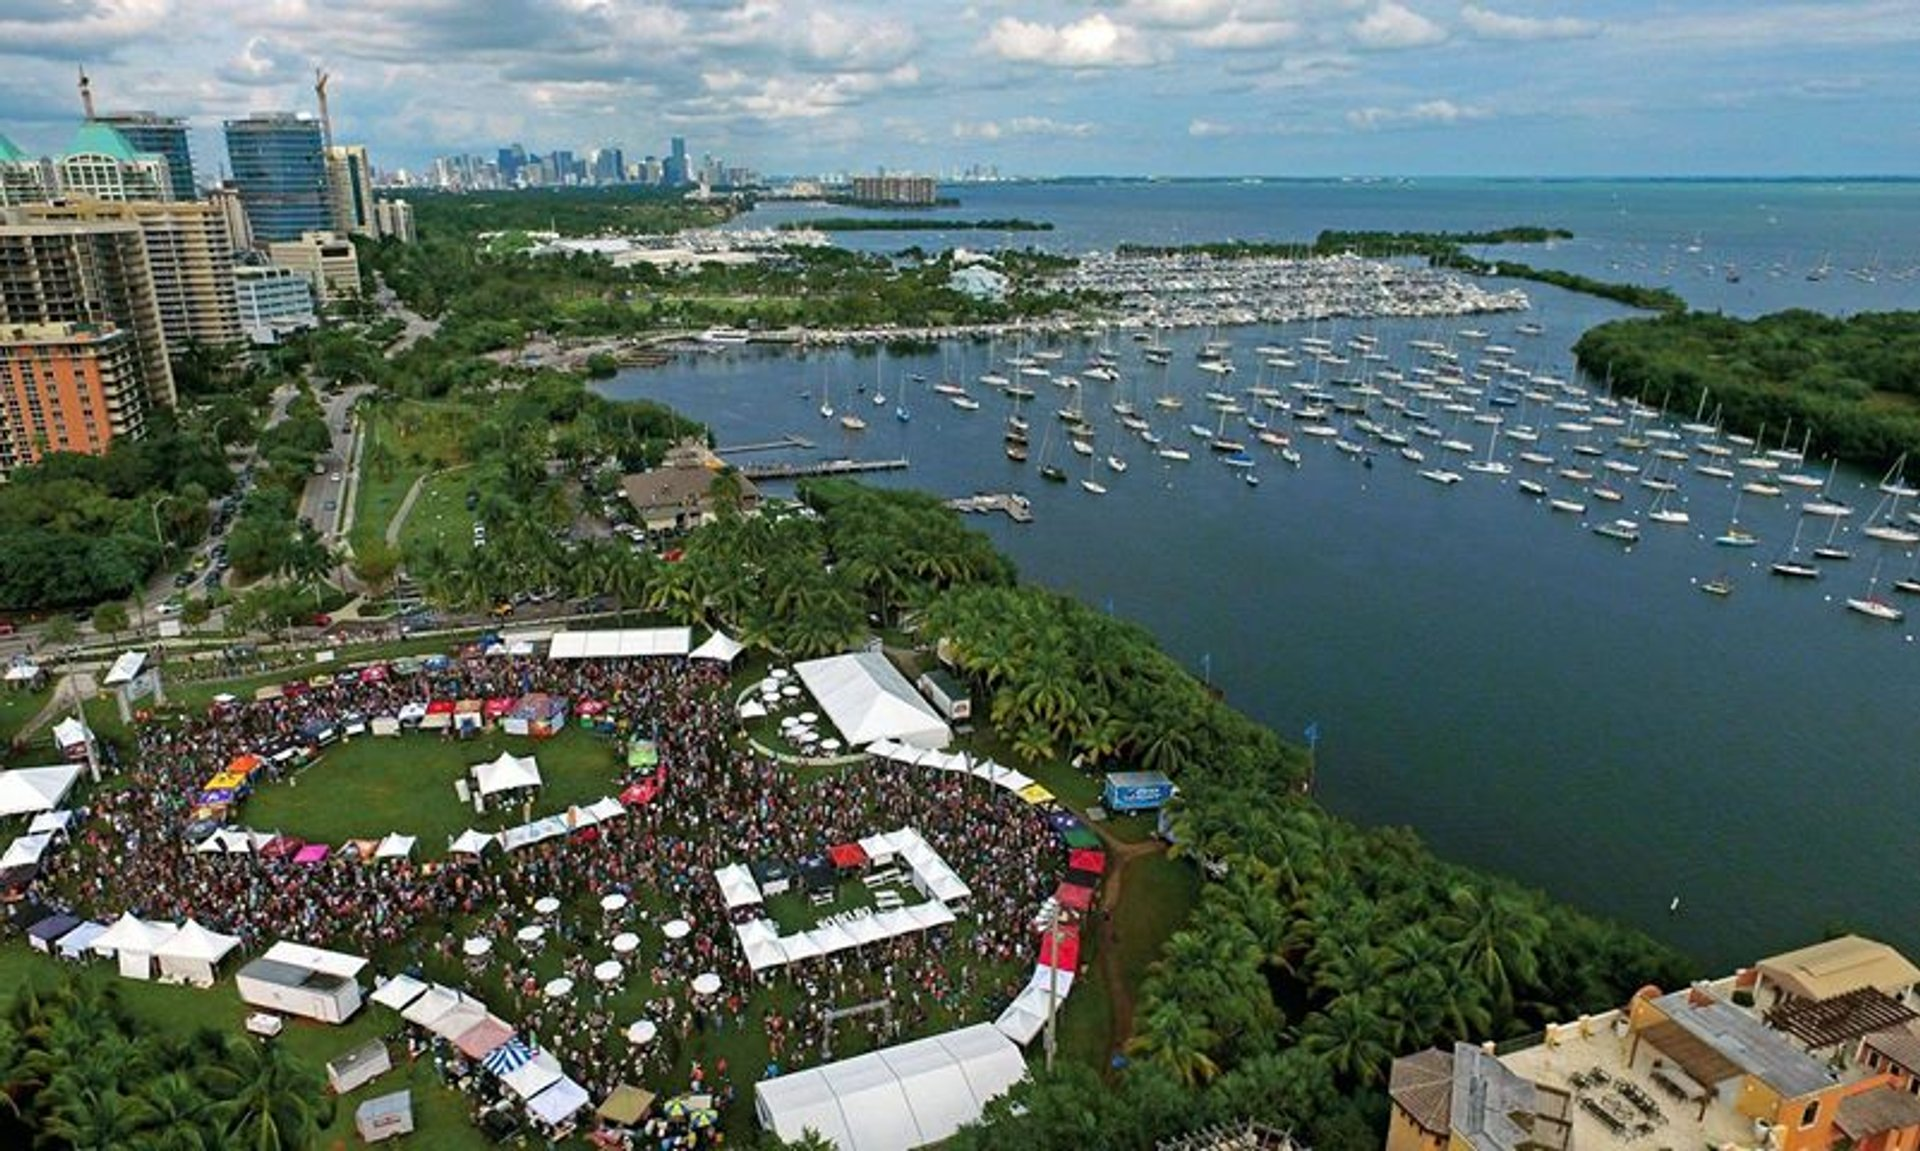 Best time for Grovetoberfest in Miami 2020